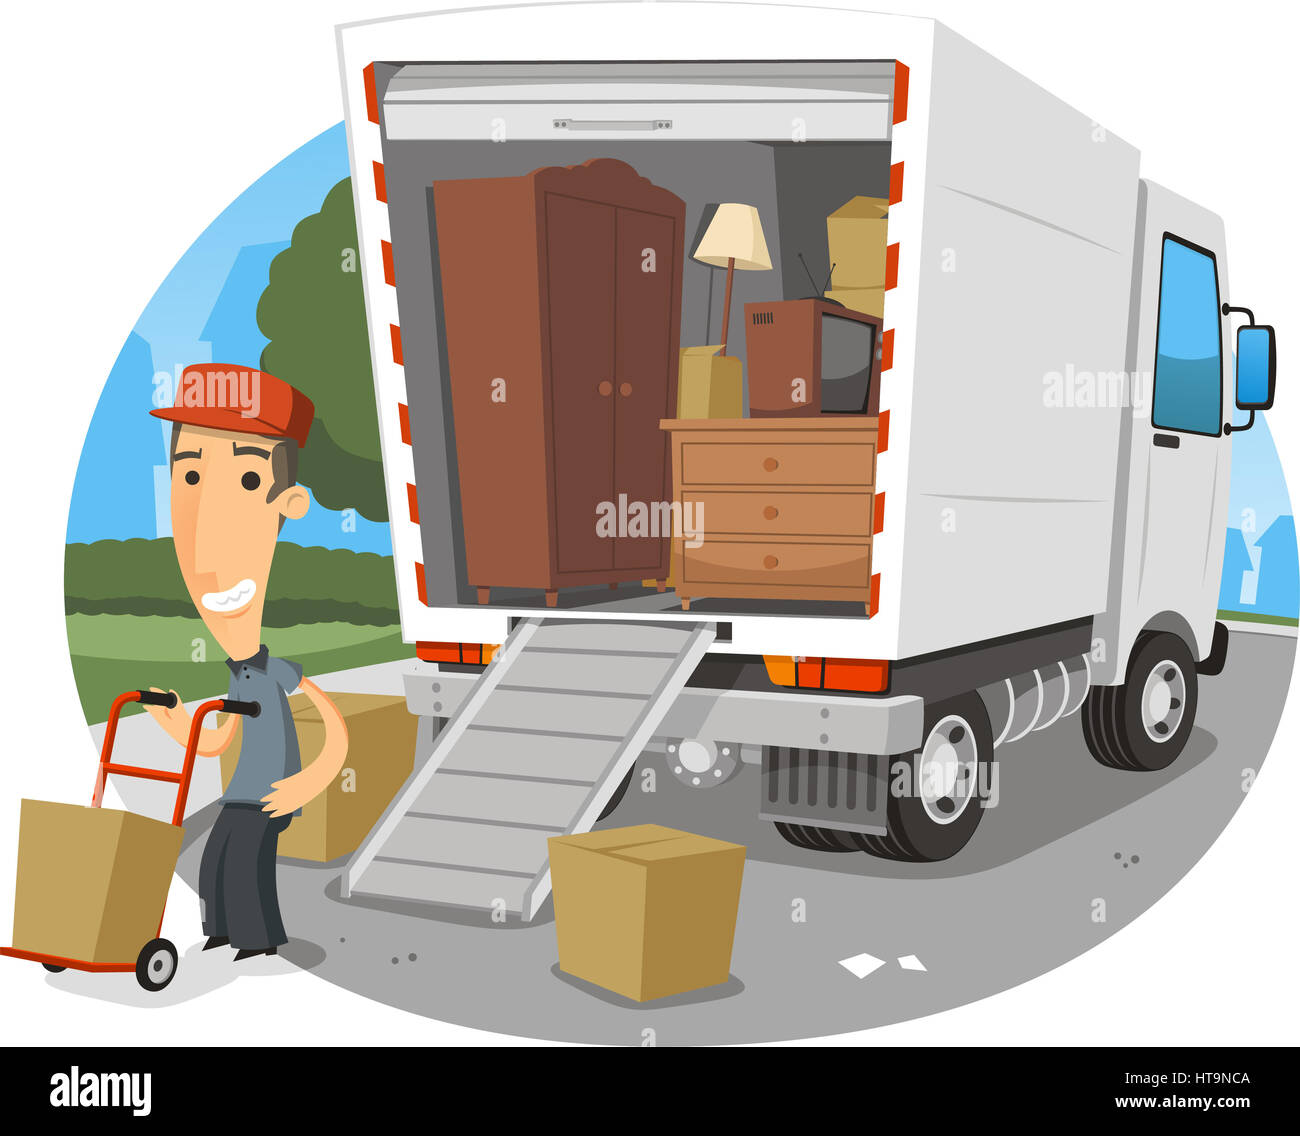 umzug lkw vektor cartoon illustration stockfoto bild 135438698 alamy. Black Bedroom Furniture Sets. Home Design Ideas